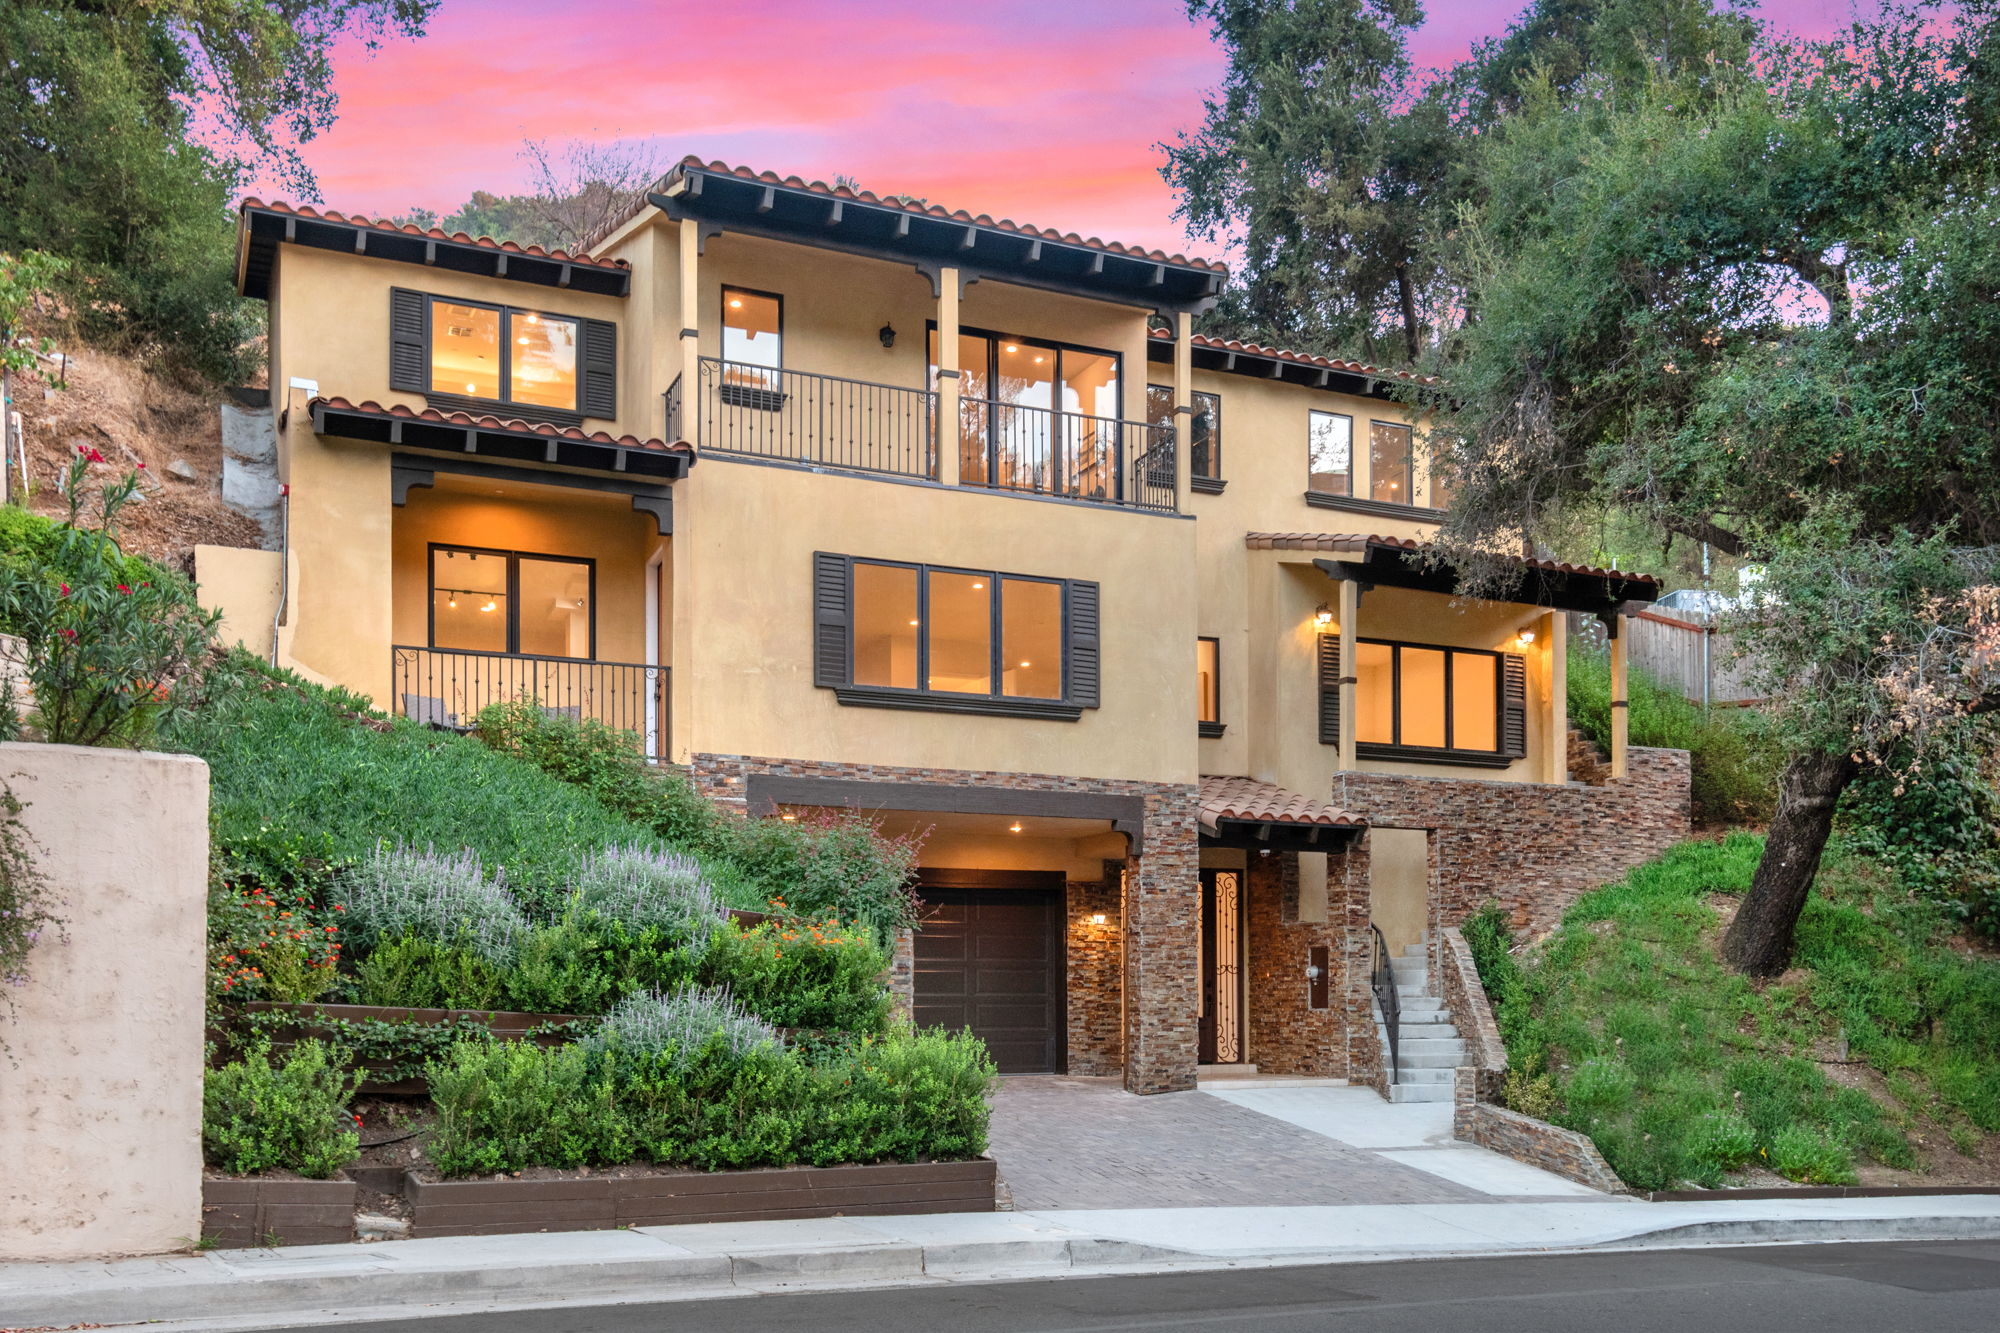 2566 E Chevy Chase Dr, Glendale, CA, 91206